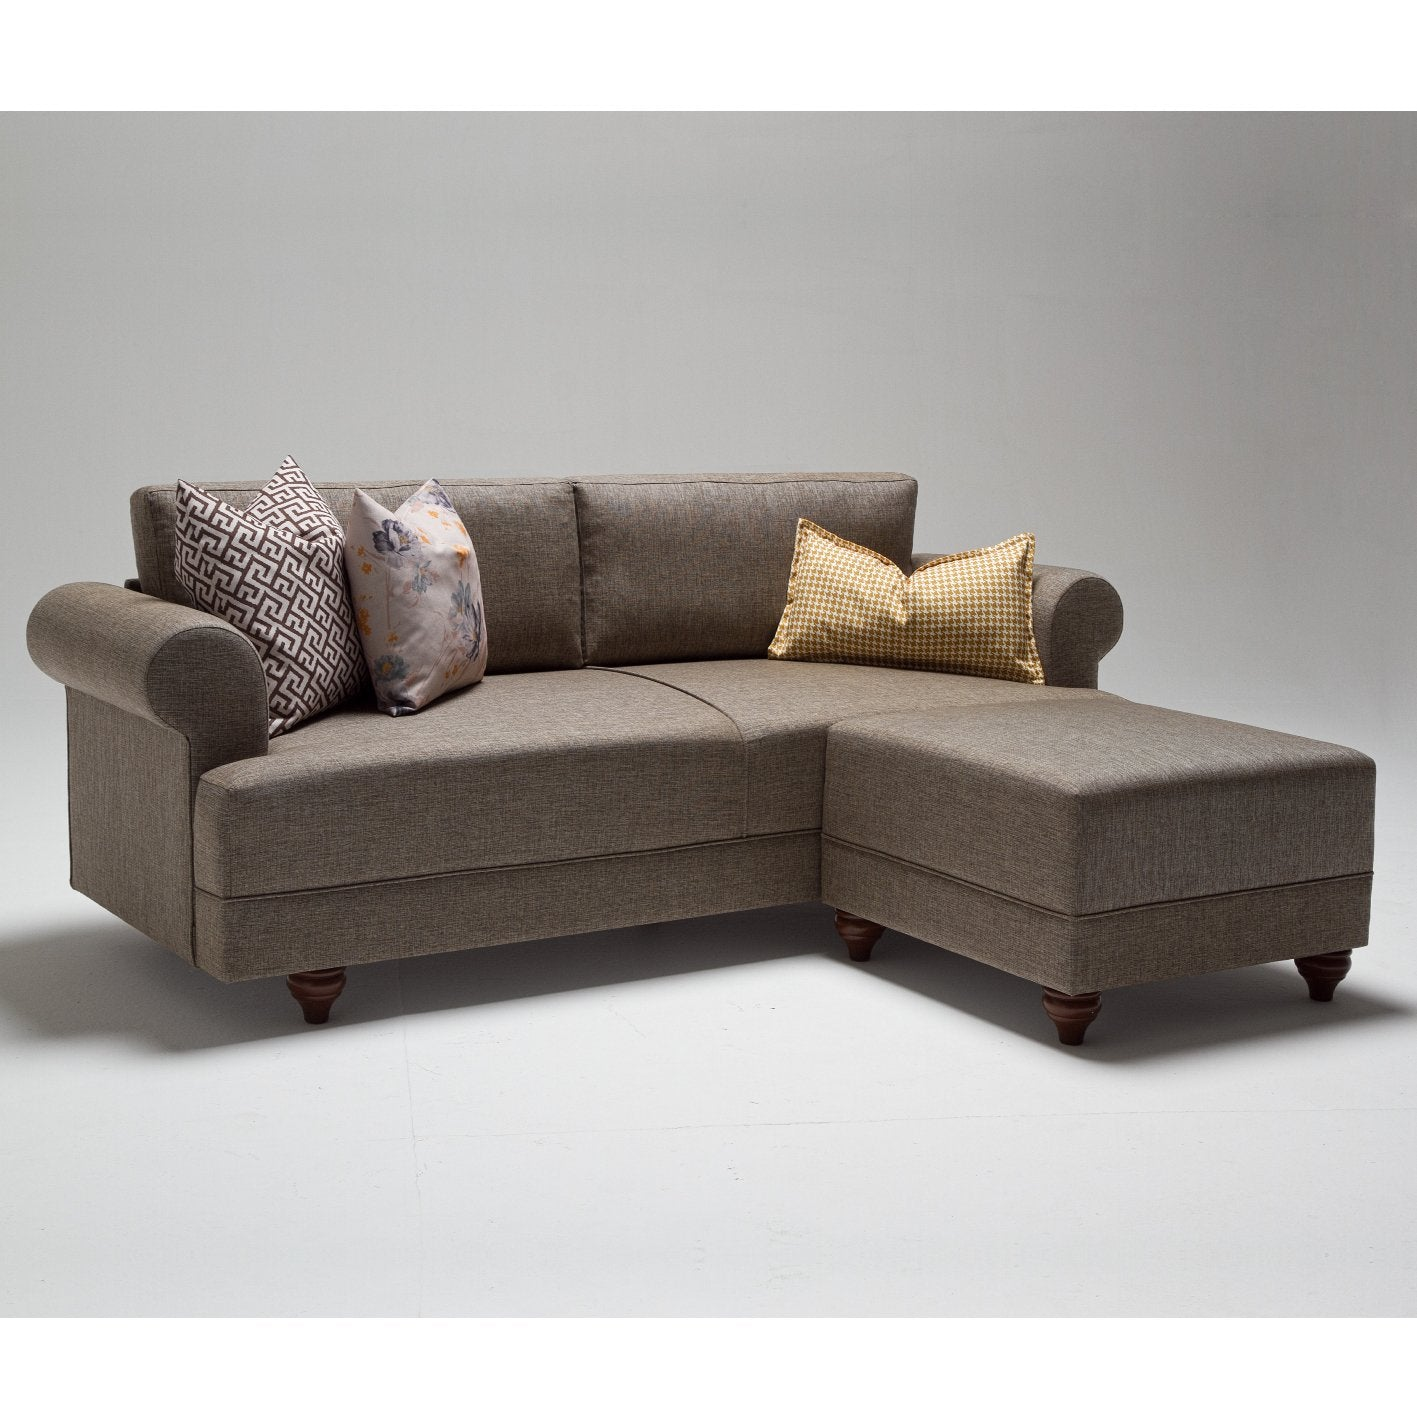 Samara Corner Sofa - Brown - Decorotika